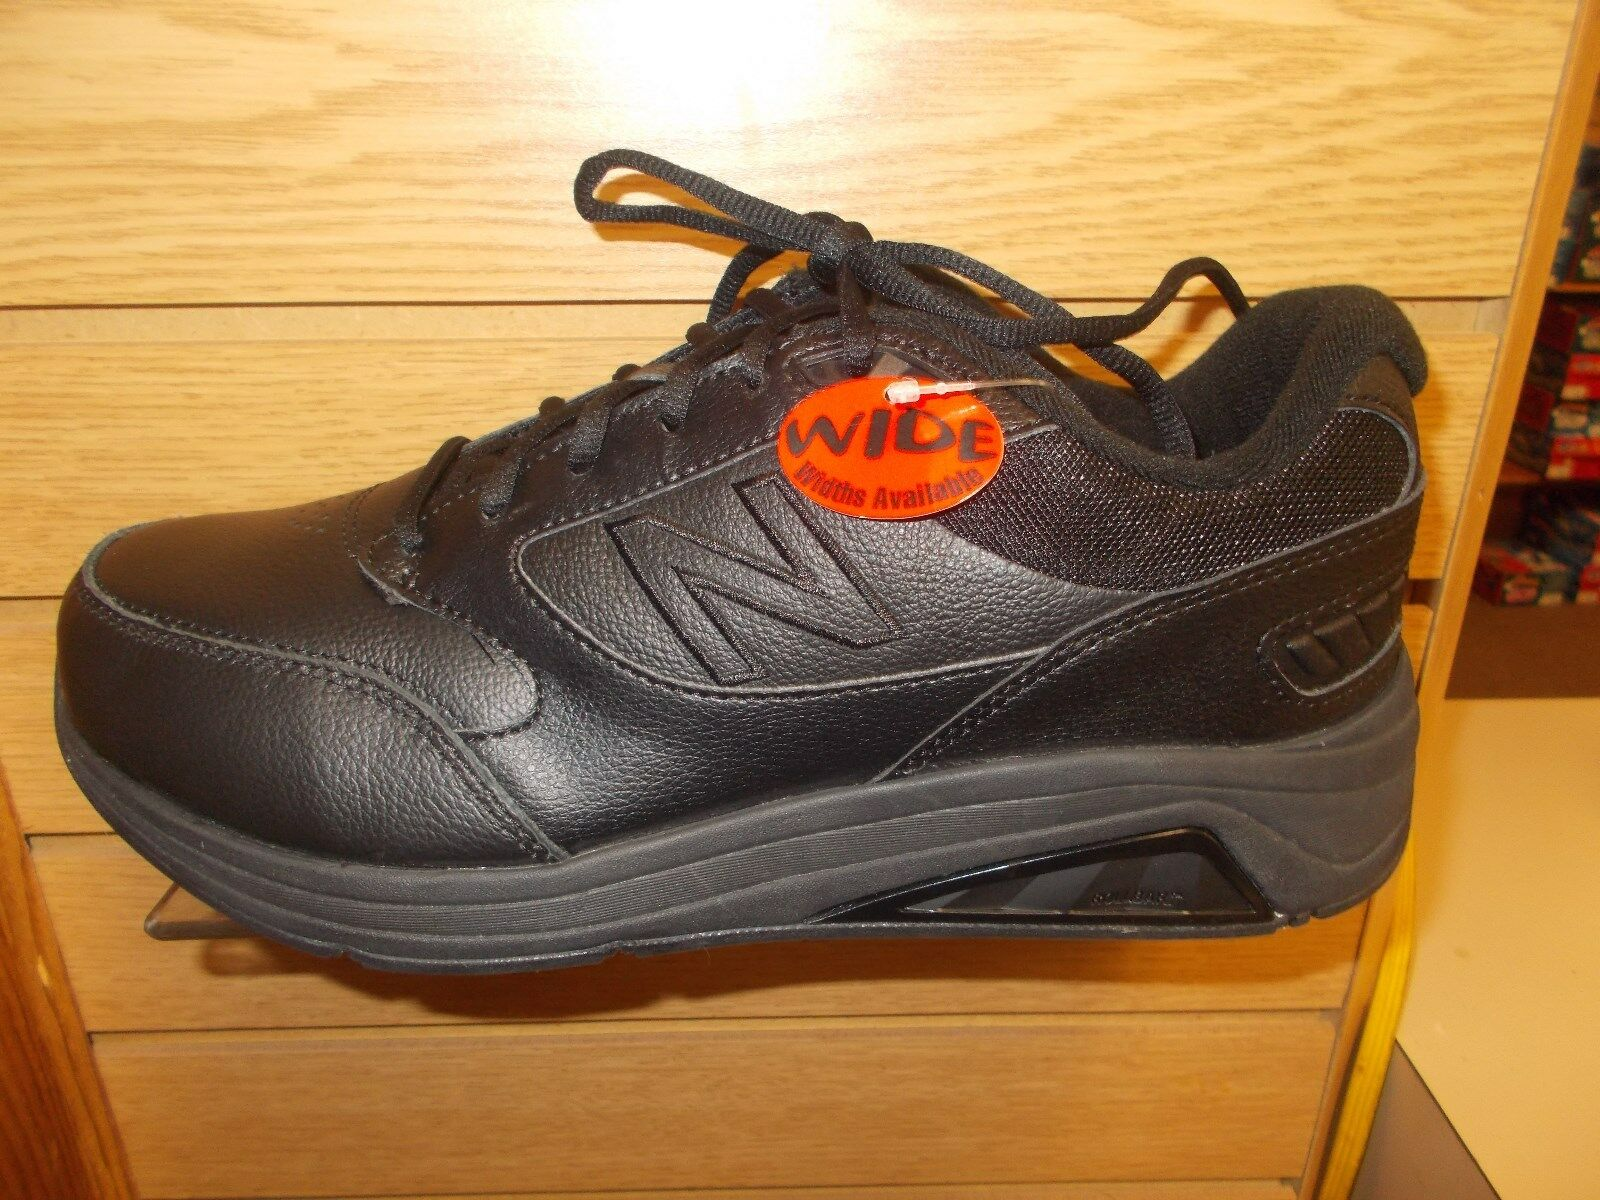 NEW BALANCE MEN'S MW 928BK3 BLACK WALKING SHOES EXTRA EXTRA WIDE 6 E WIDTH